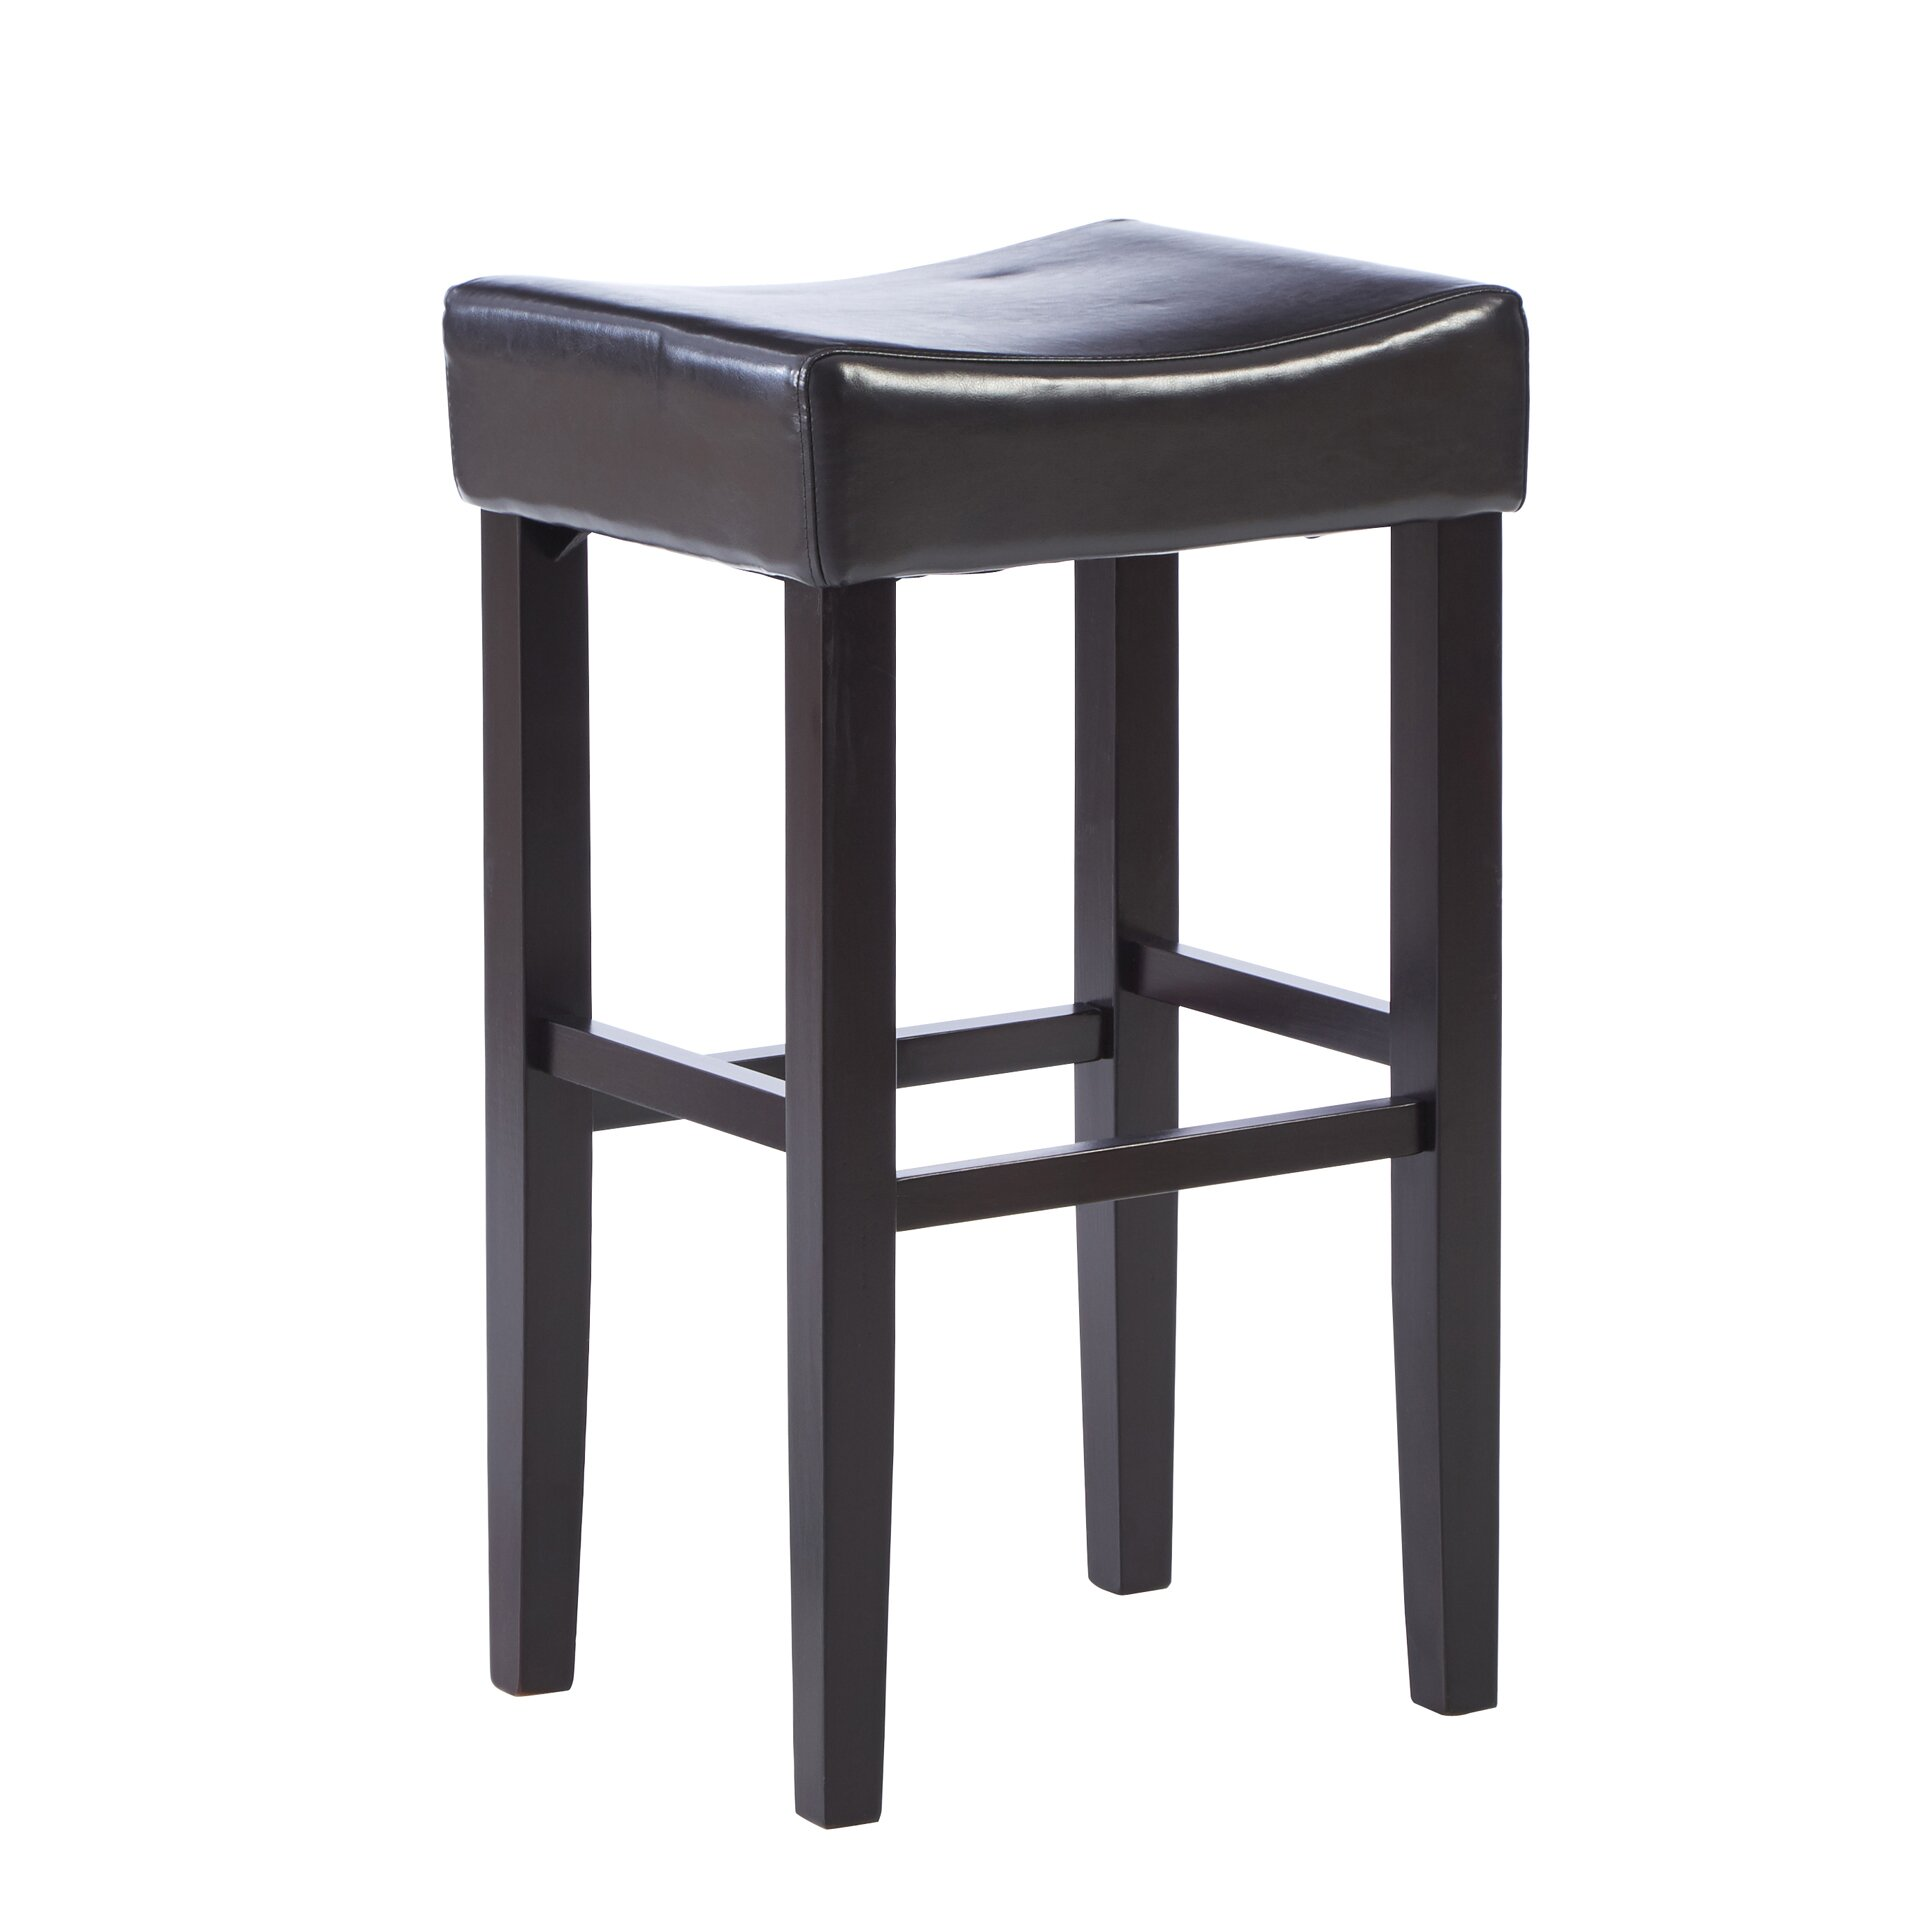 Andover Mills 30quot Bar Stool amp Reviews Wayfairca : Landry2BBackless2BBarstool from www.wayfair.ca size 1920 x 1920 jpeg 183kB